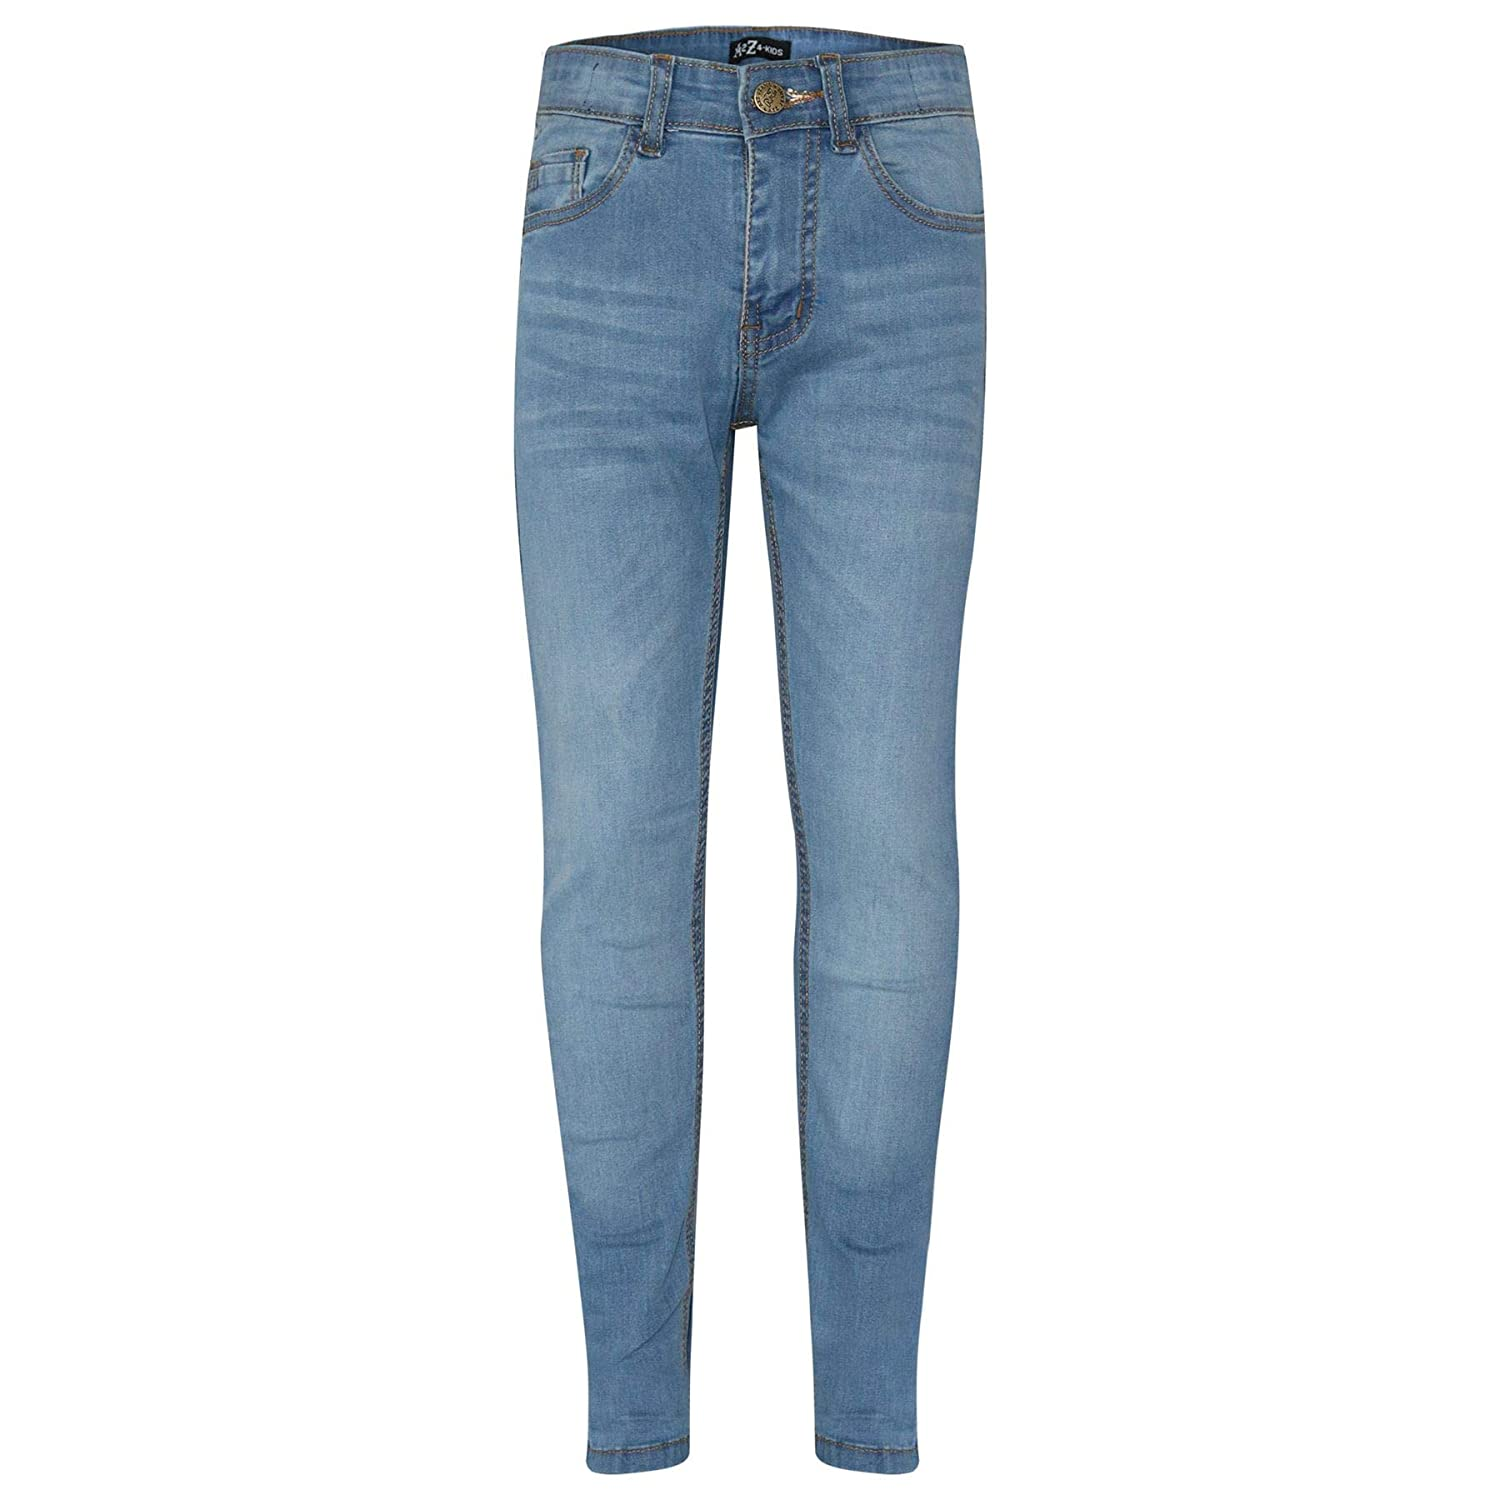 A2Z 4 Kids Kids Boys Skinny Jeans Designer's Denim Stretchy Pants Fashion Fit Trousers New Age 5 6 7 8 9 10 11 12 13 Years